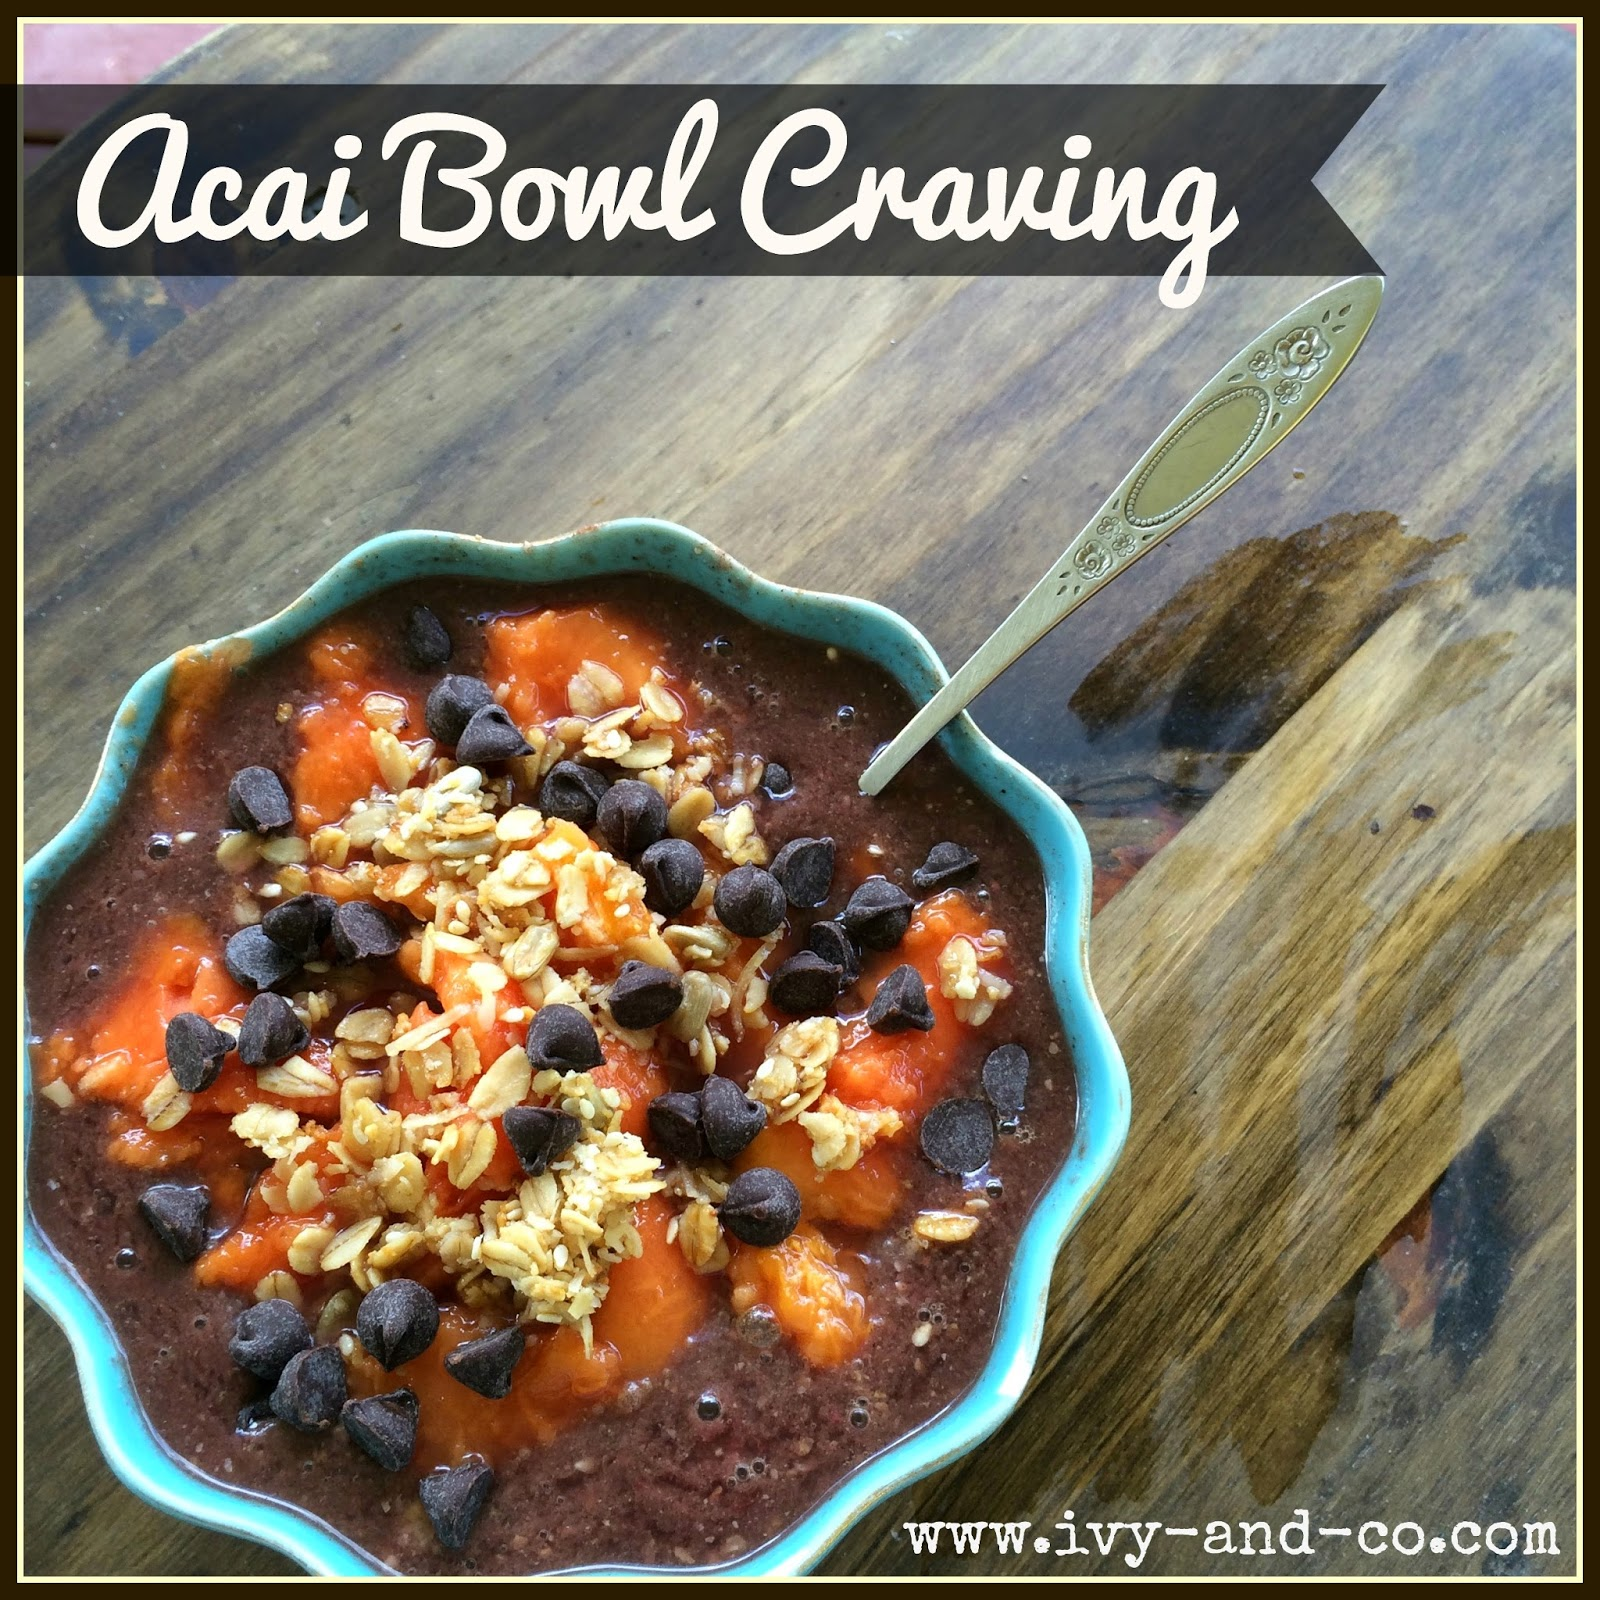 Acai Bowl recipe from Hawaii